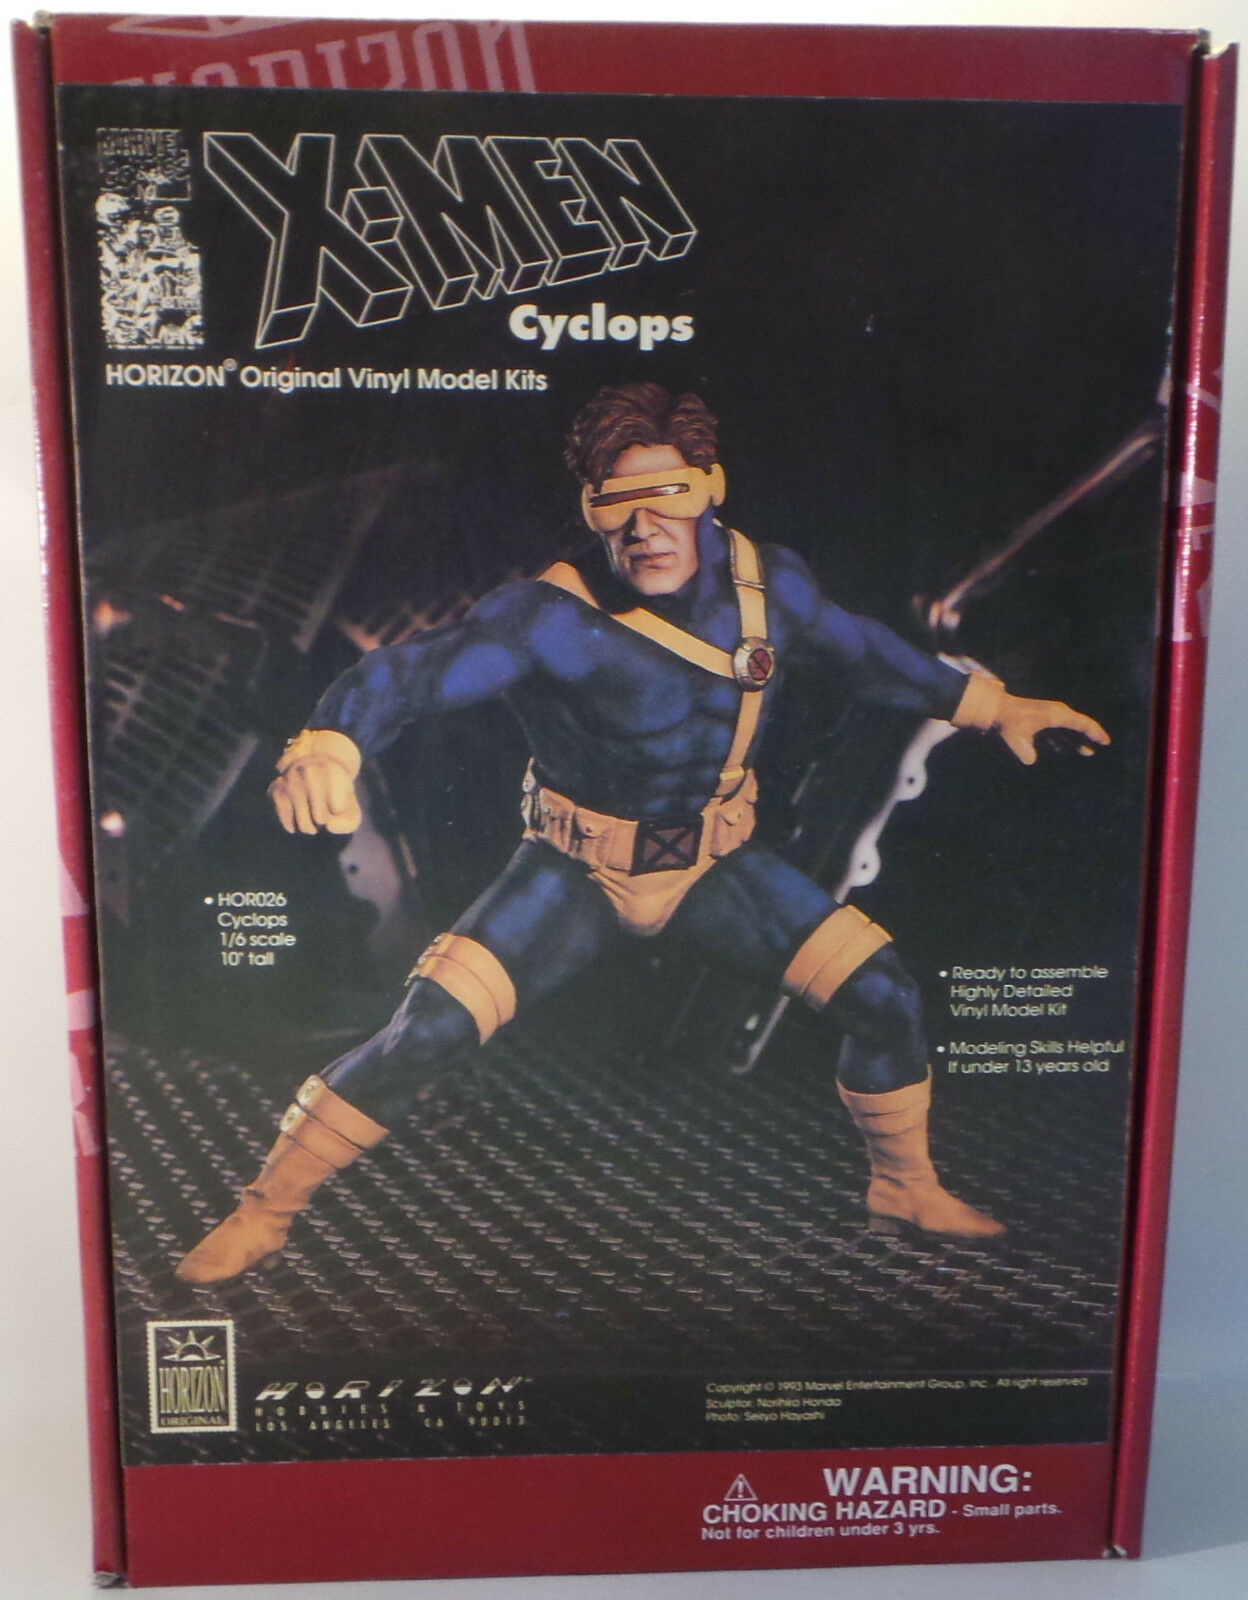 THE X-MEN   1 6 SCALE CYCLOPS VINYL MODEL KIT MADE BY HORIZON IN 1993.